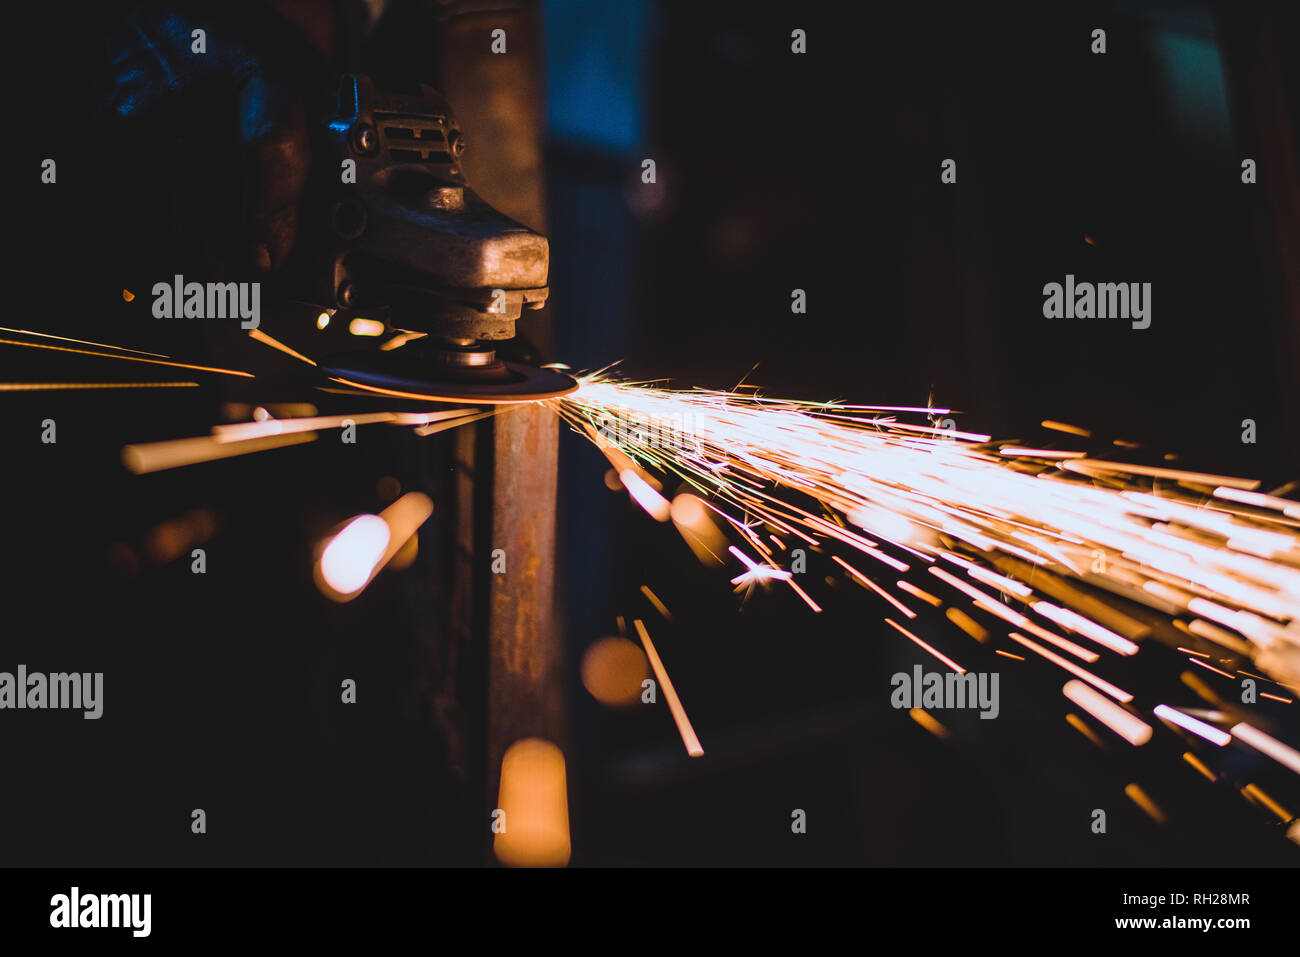 Man processes metal with an angle grinder - Stock Image